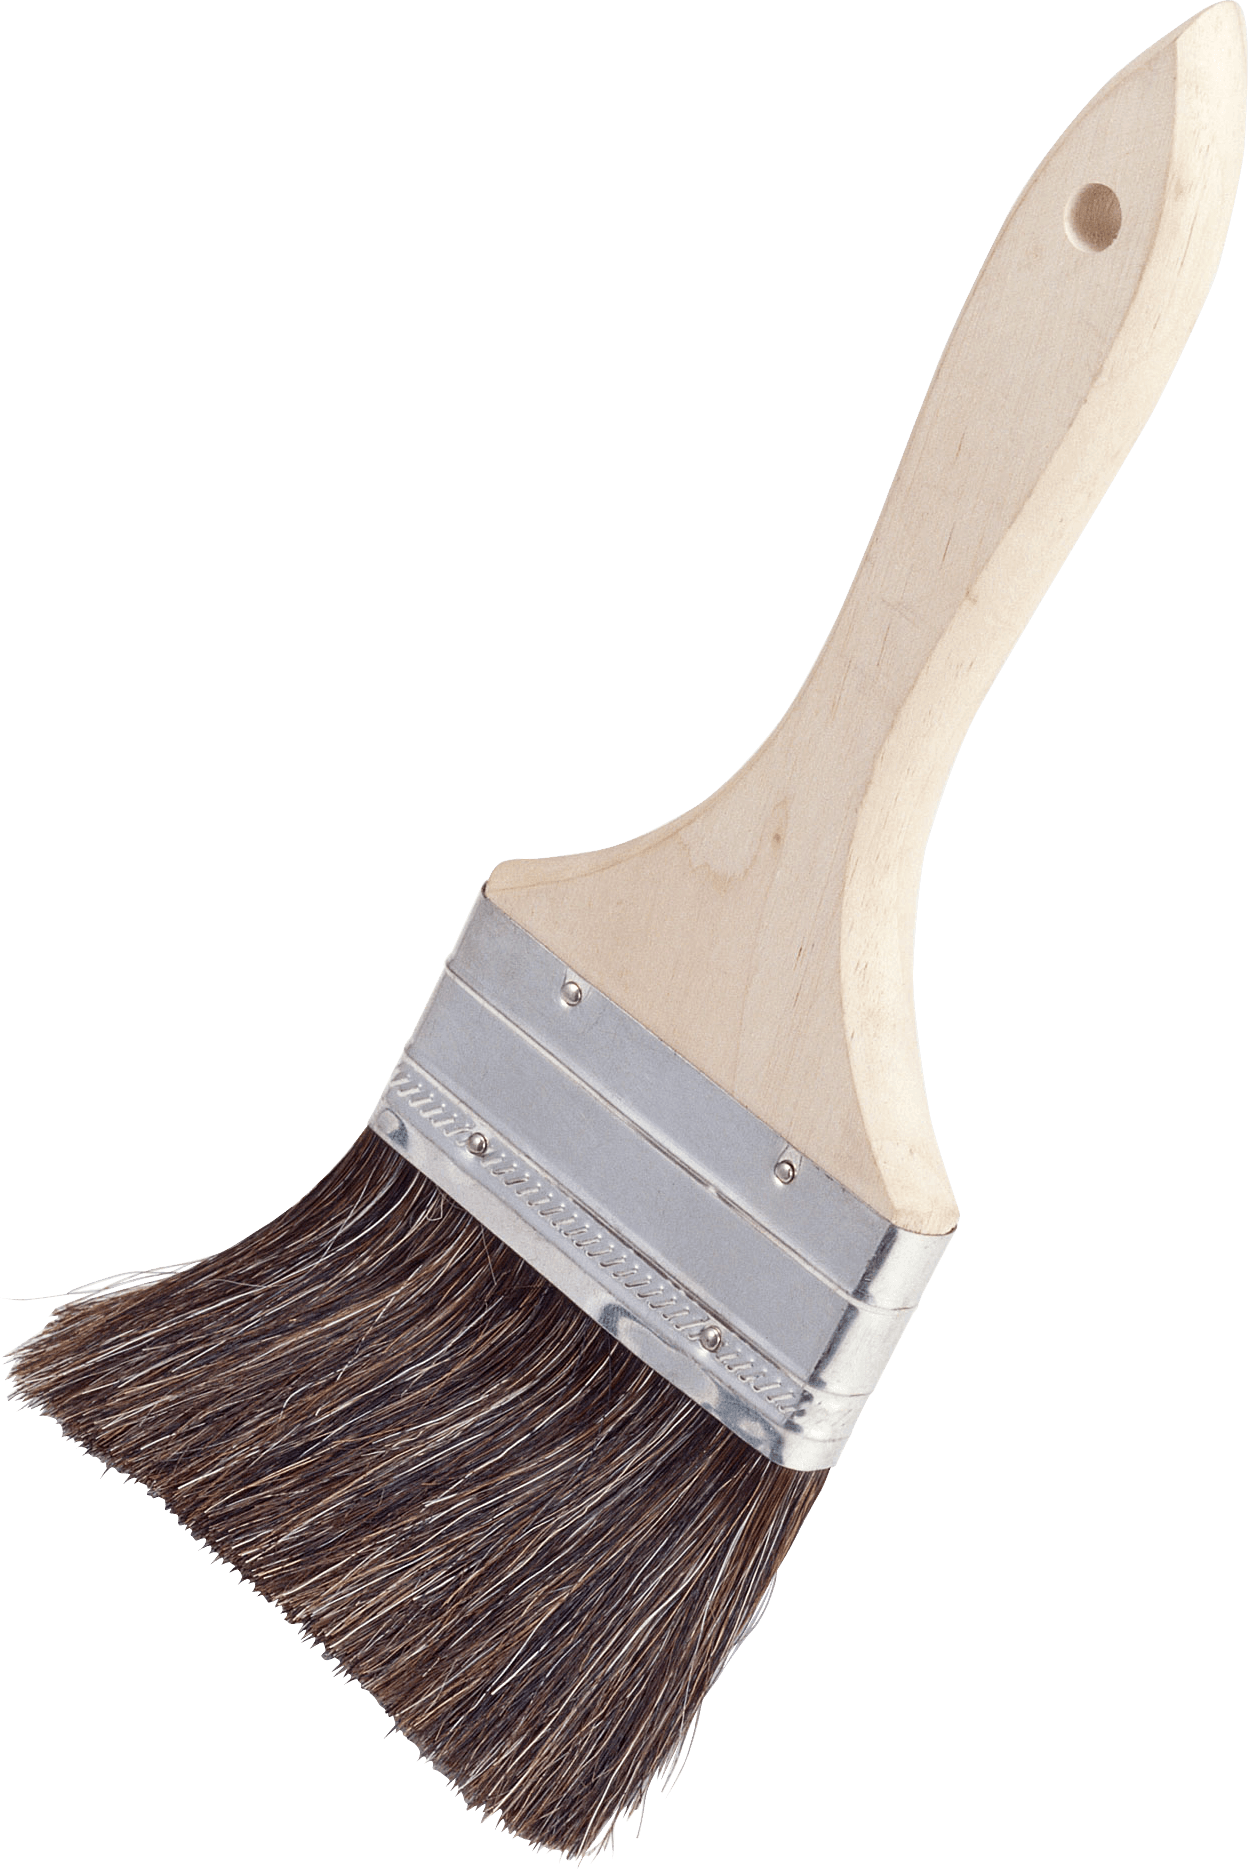 Paint Brush Png Image PNG Image